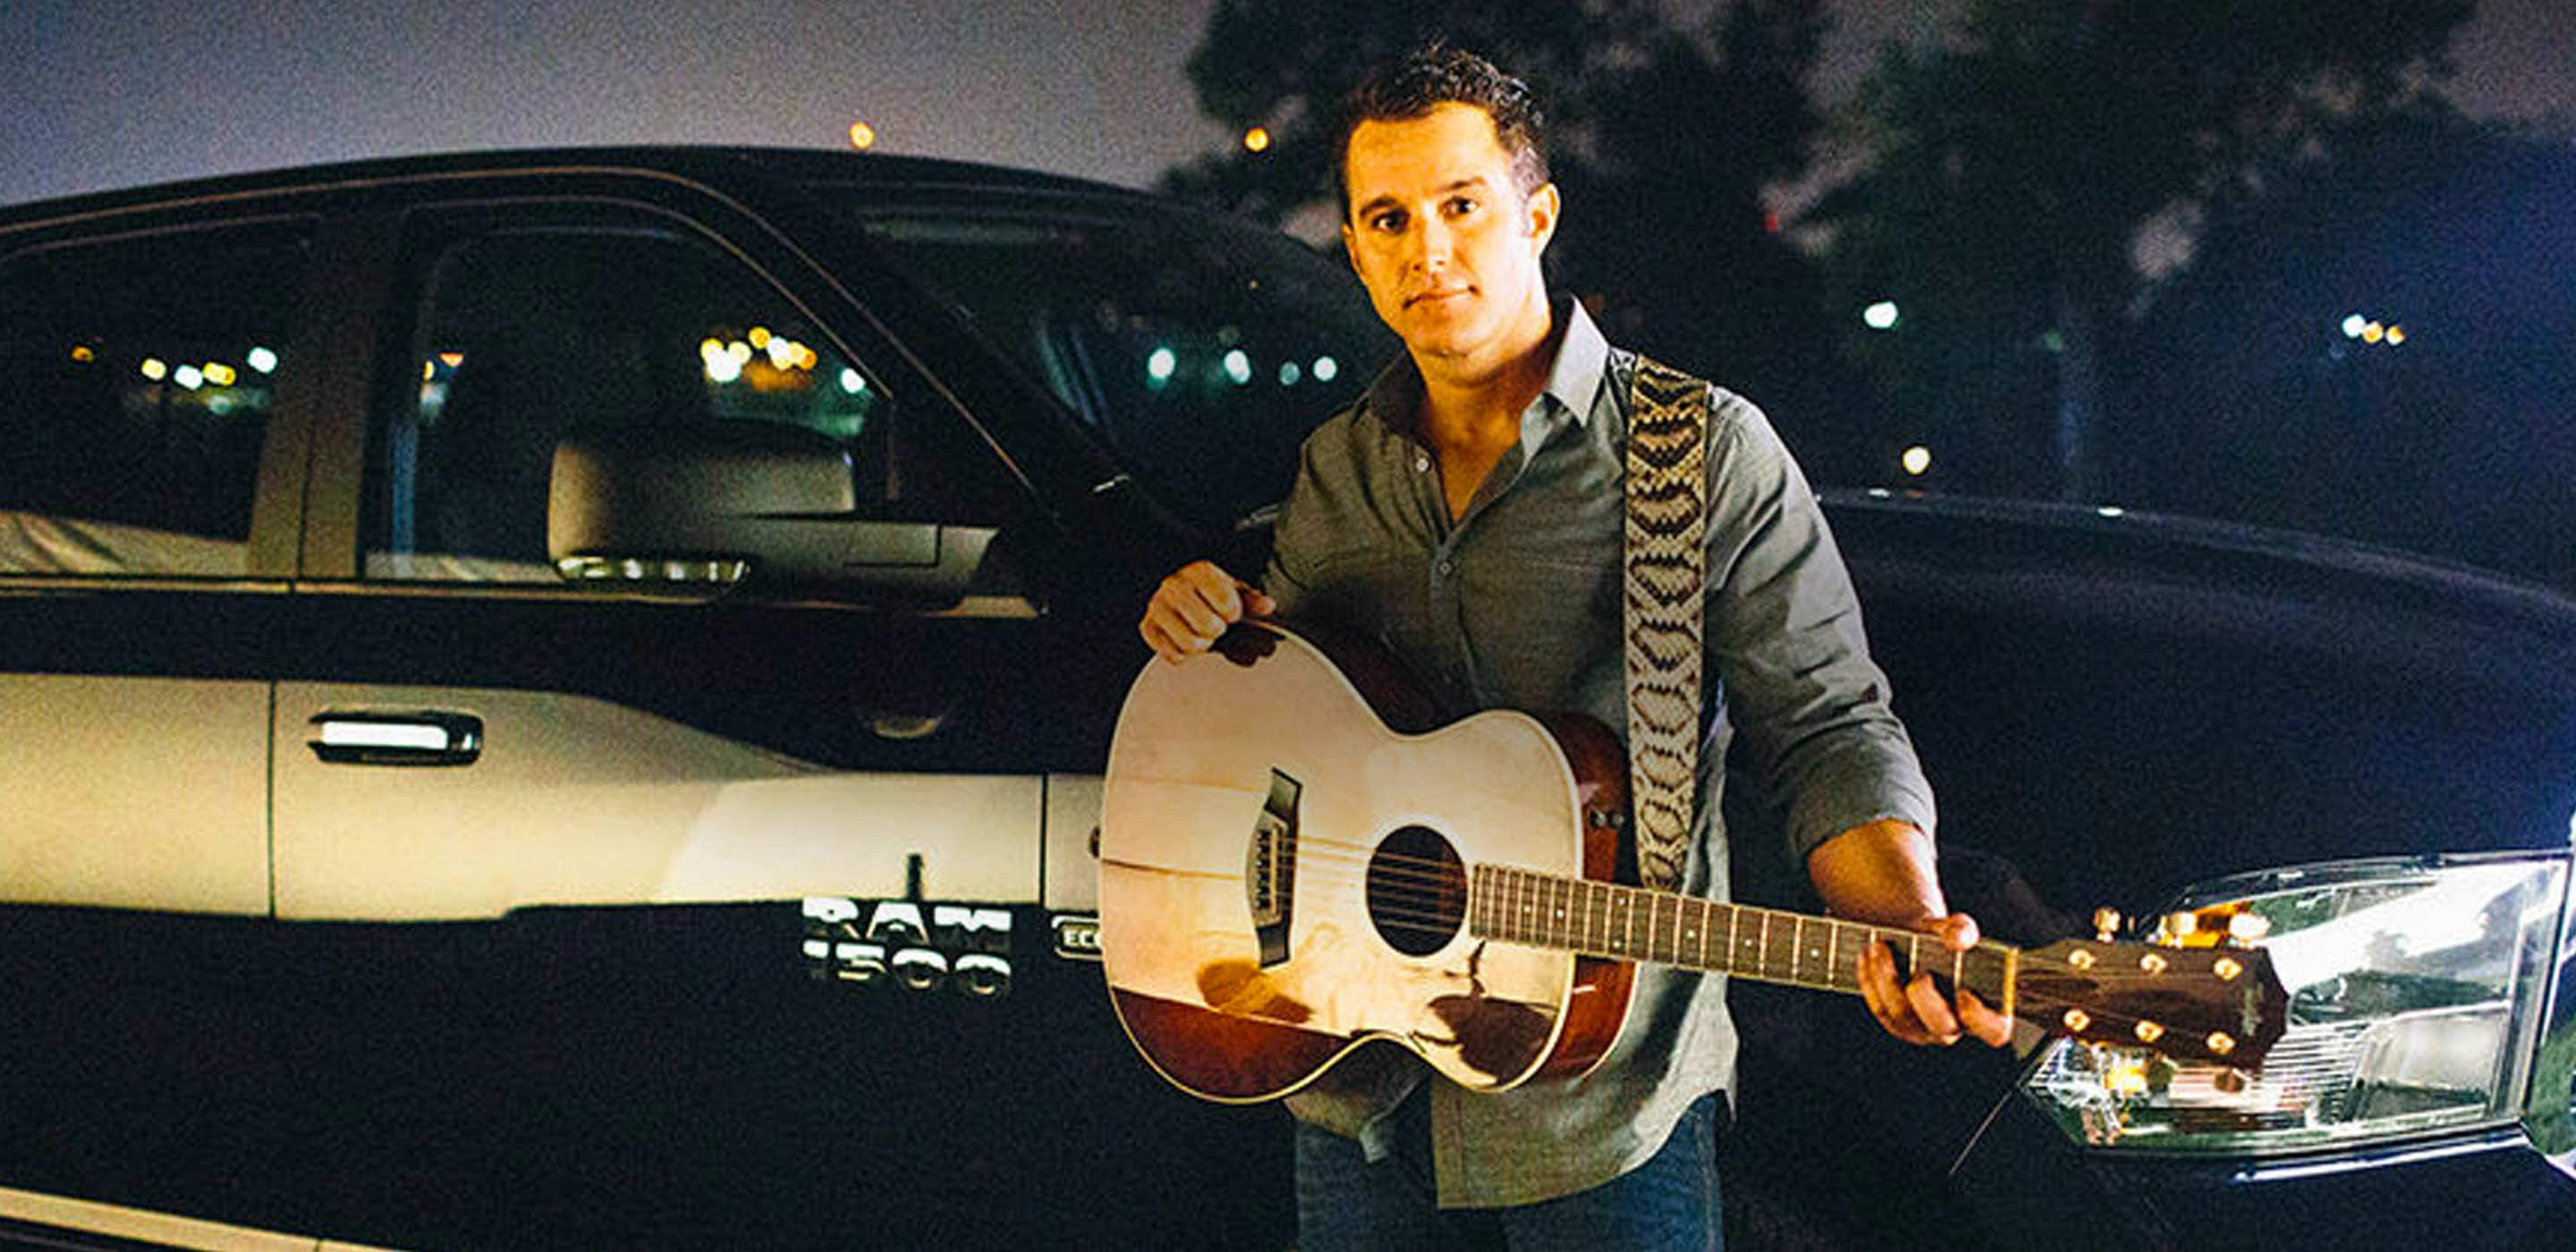 Display Country recording artist Easton Corbin holding a guitar and standing next to a Ram 1500 pickup.